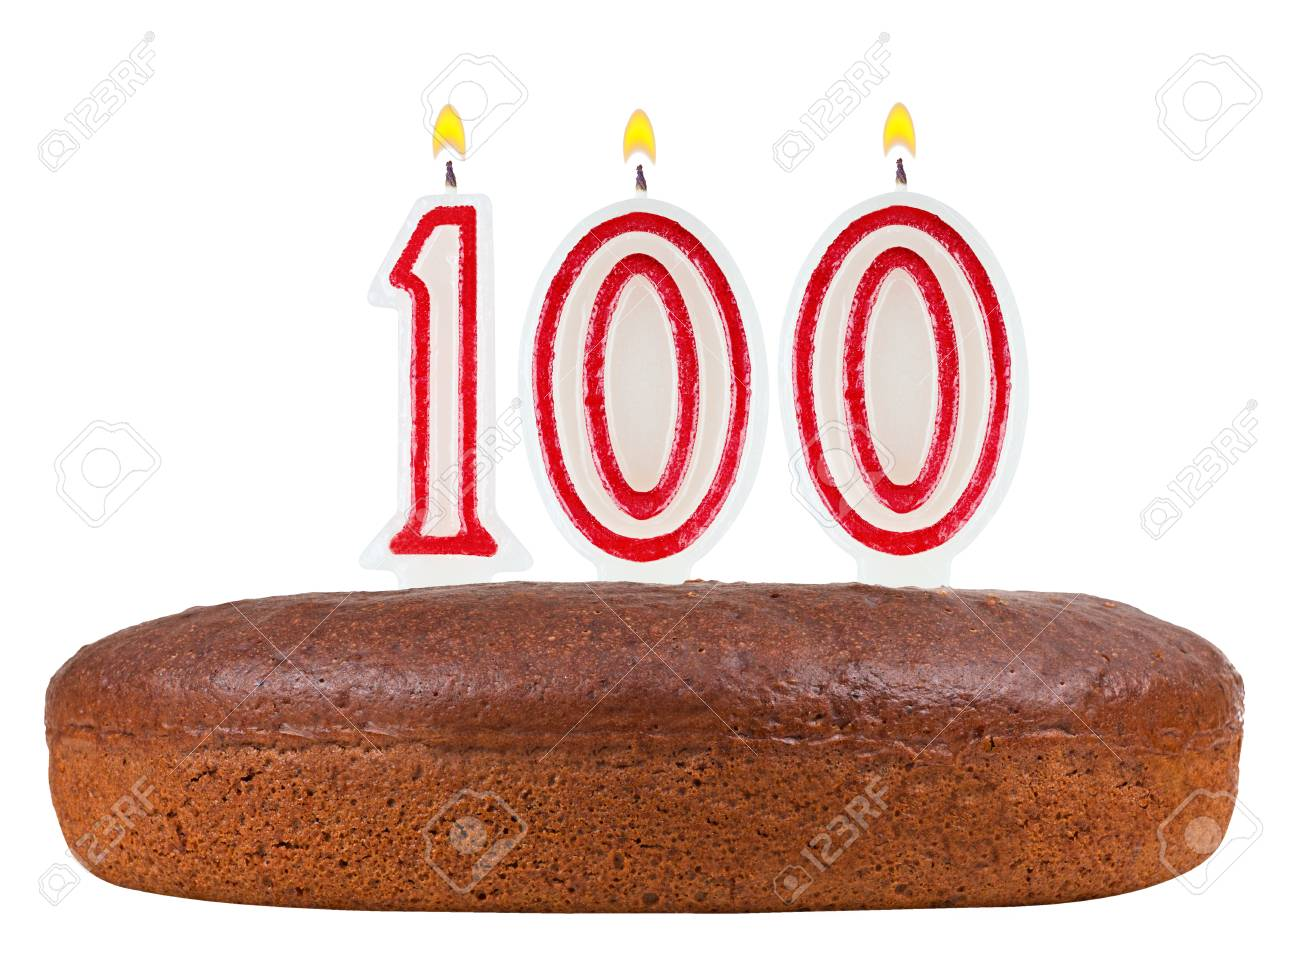 Birthday Cake With Candles Number 100 Isolated On White Background Stock Photo